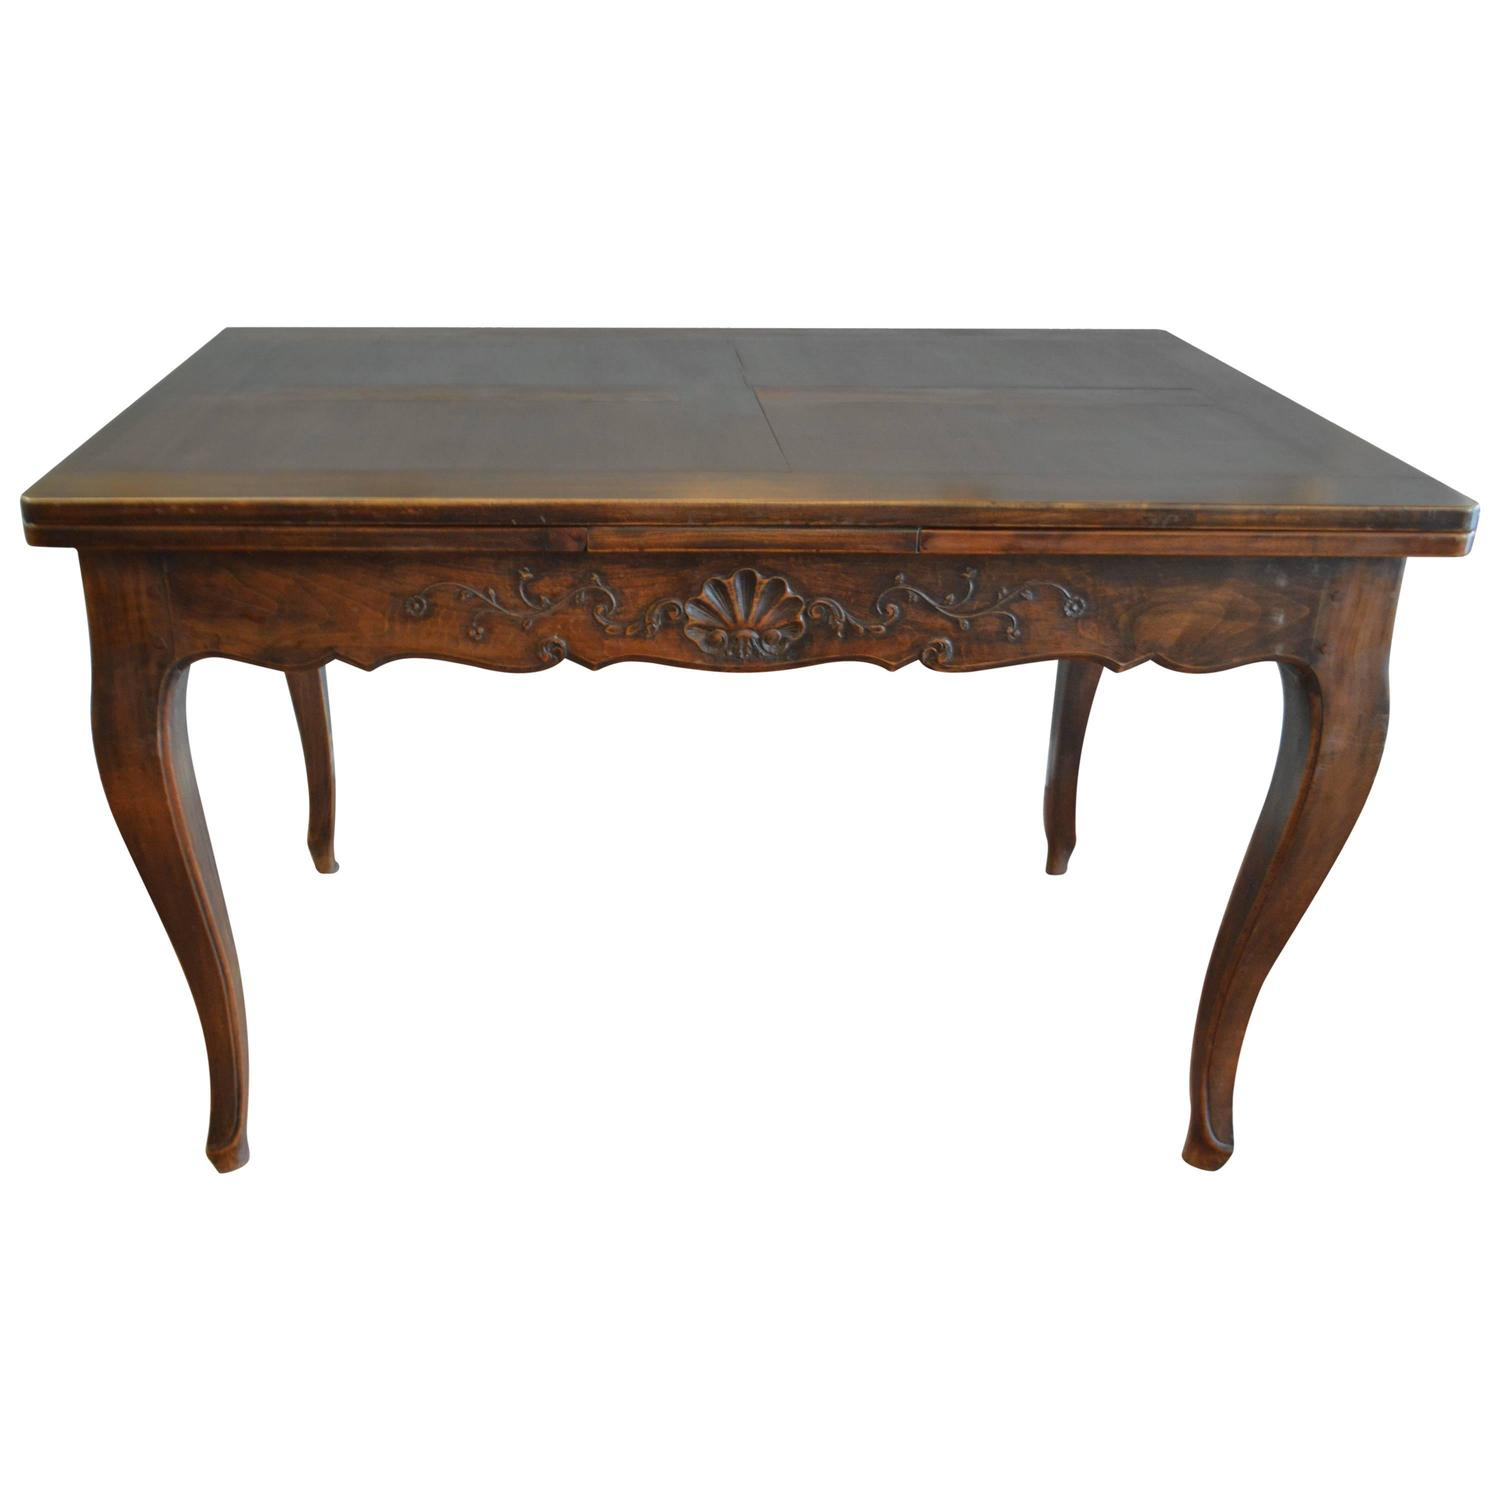 French country style walnut dining table at 1stdibs for Dining room table styles